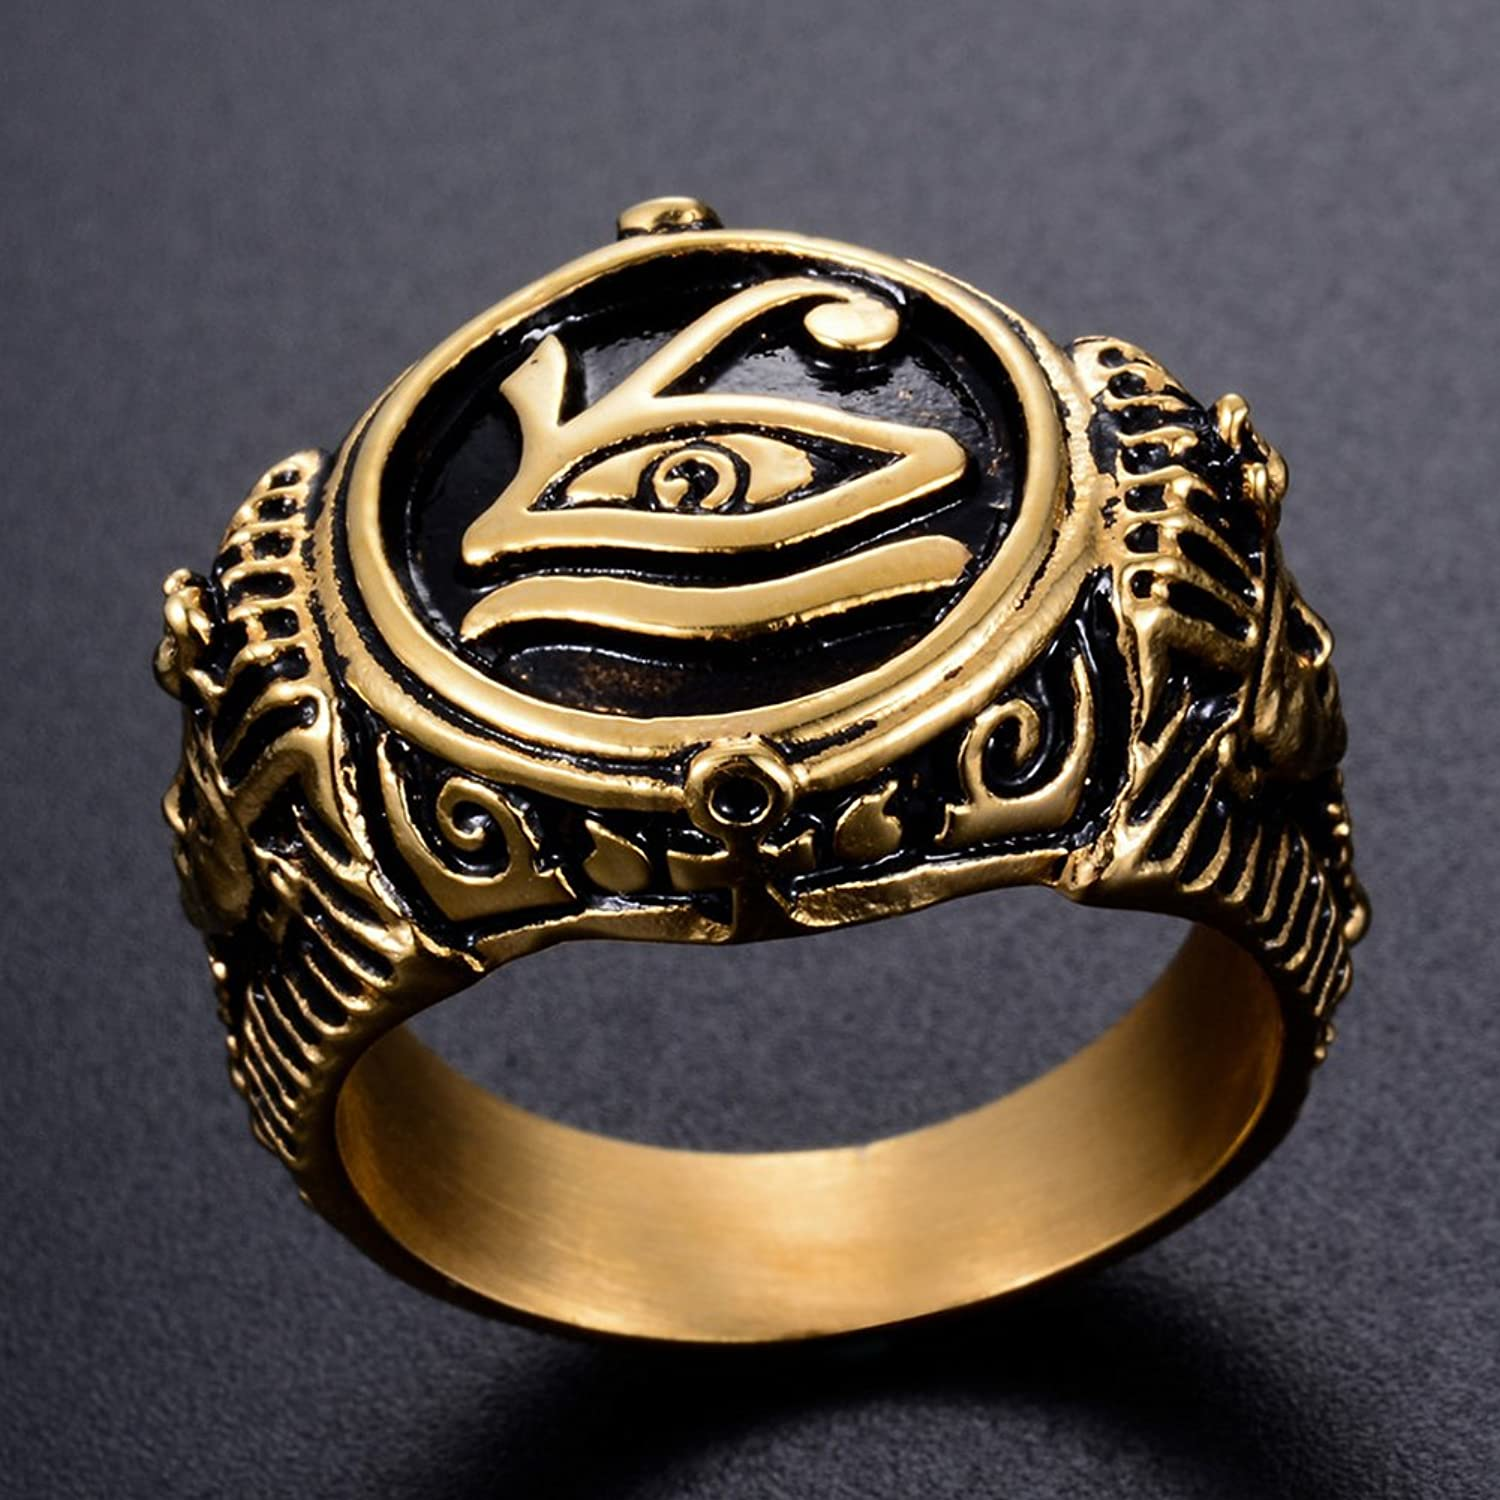 rings zoom egyptian engagement npbx art wedding il listing fullxfull deco ring